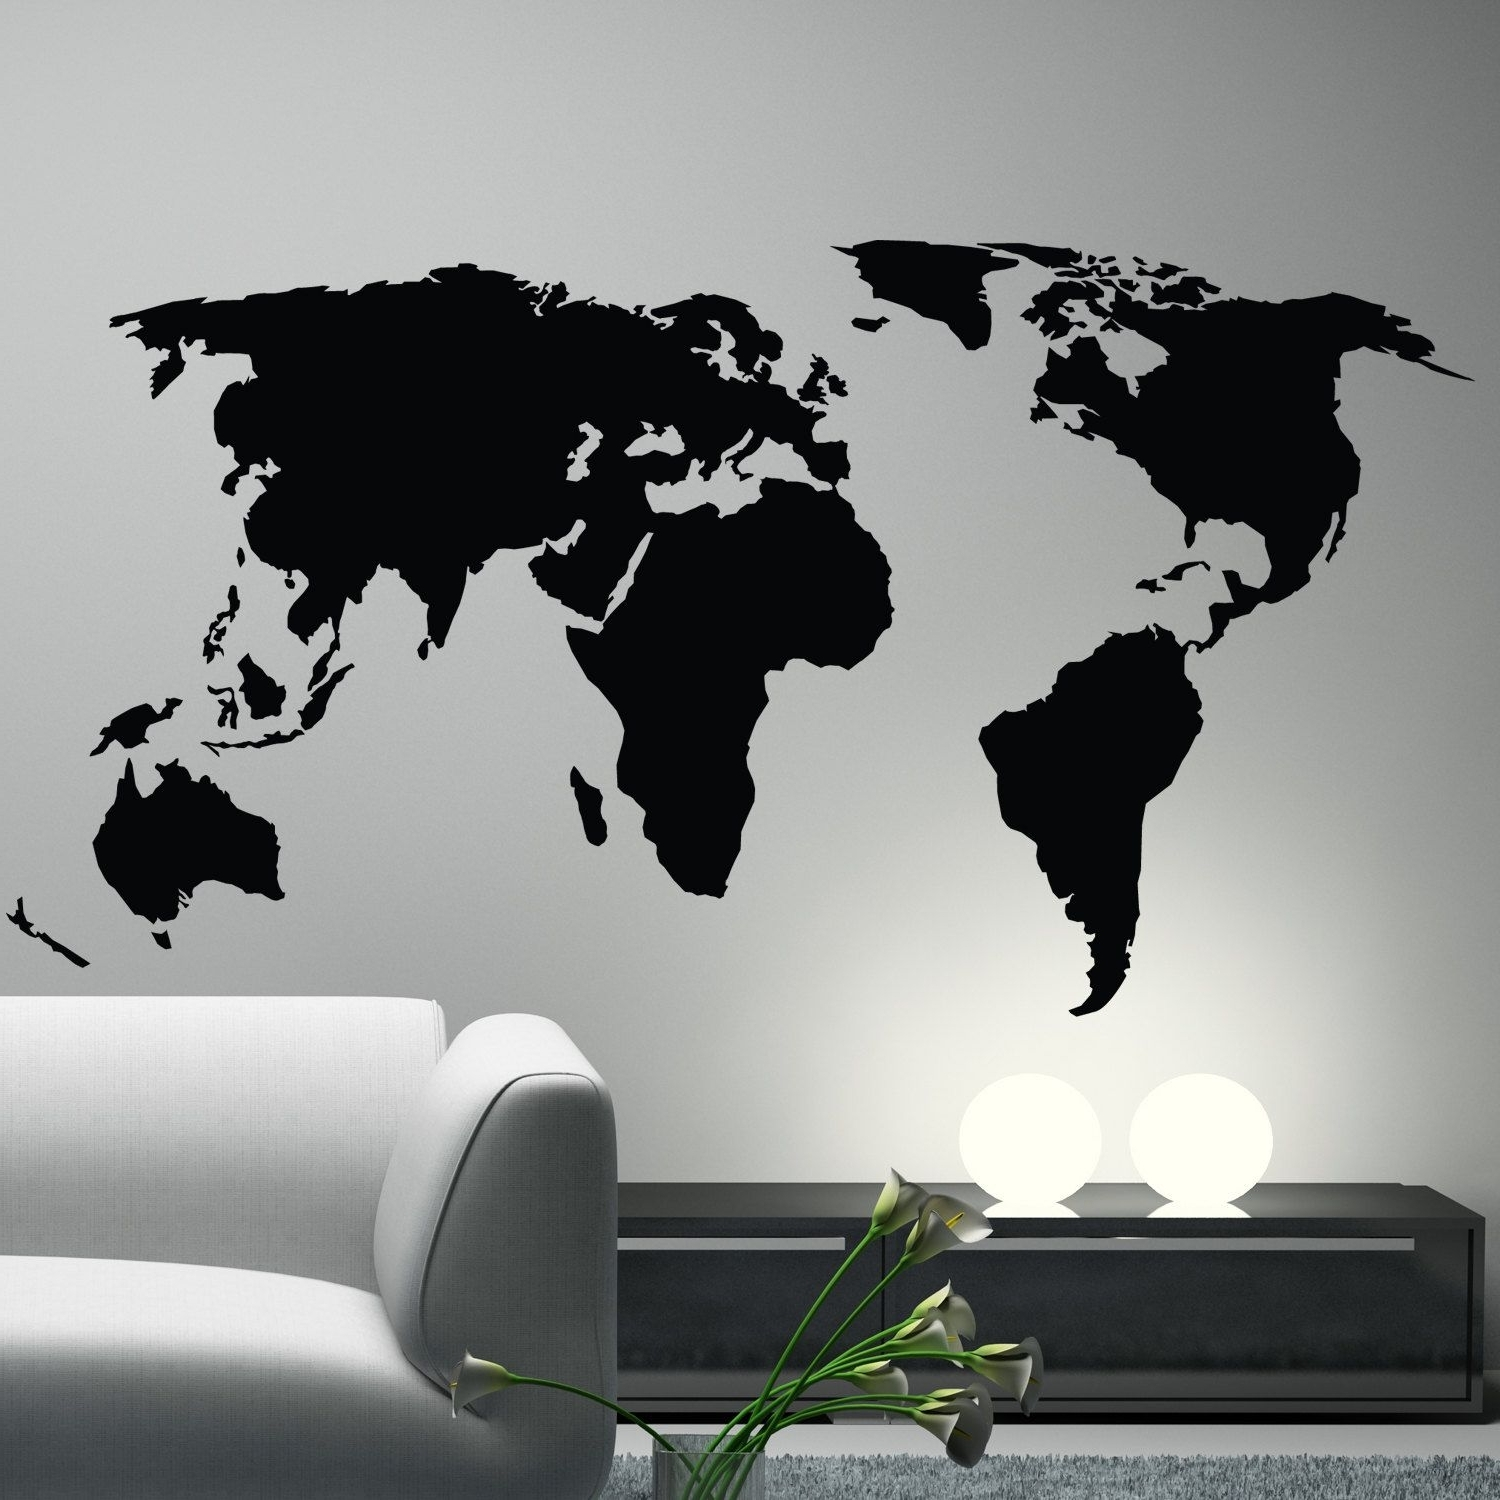 Wall Art Stickers World Map Intended For Trendy Office Decor (View 4 of 15)